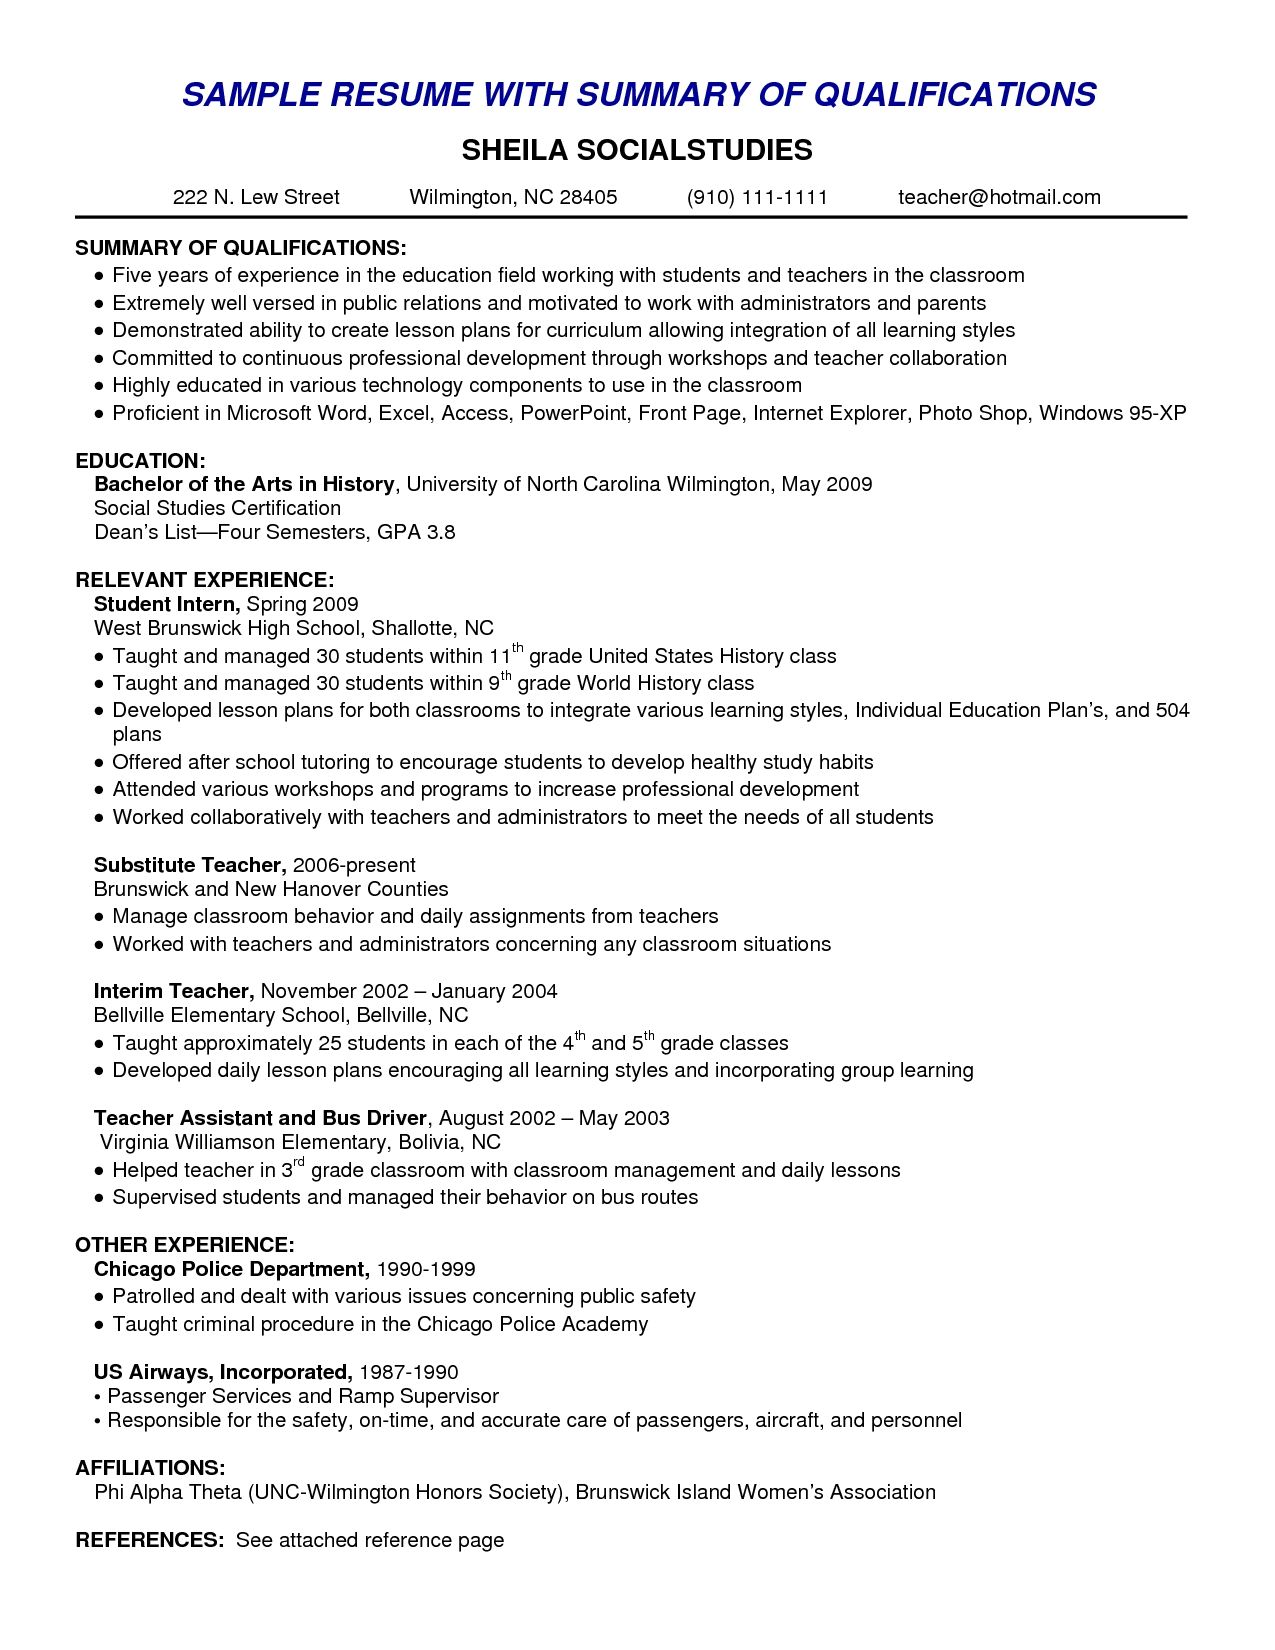 Resume Bullet Points Examples Resume Skills Summary Examples Example Of Skills Summary For